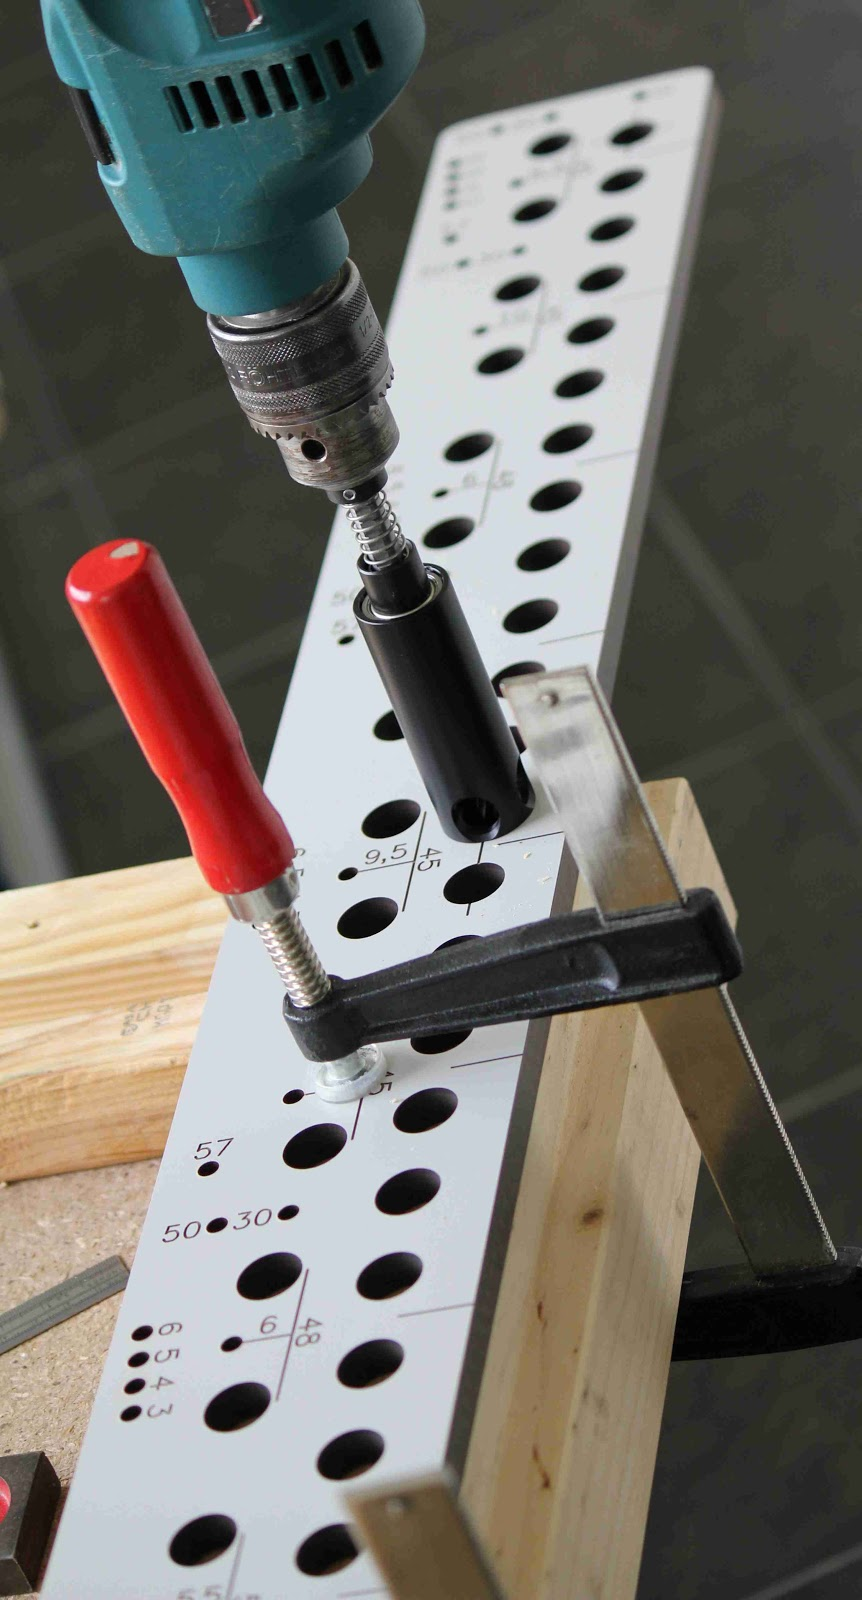 Once A Few 5mm Holes Have Been Drilled Initially,